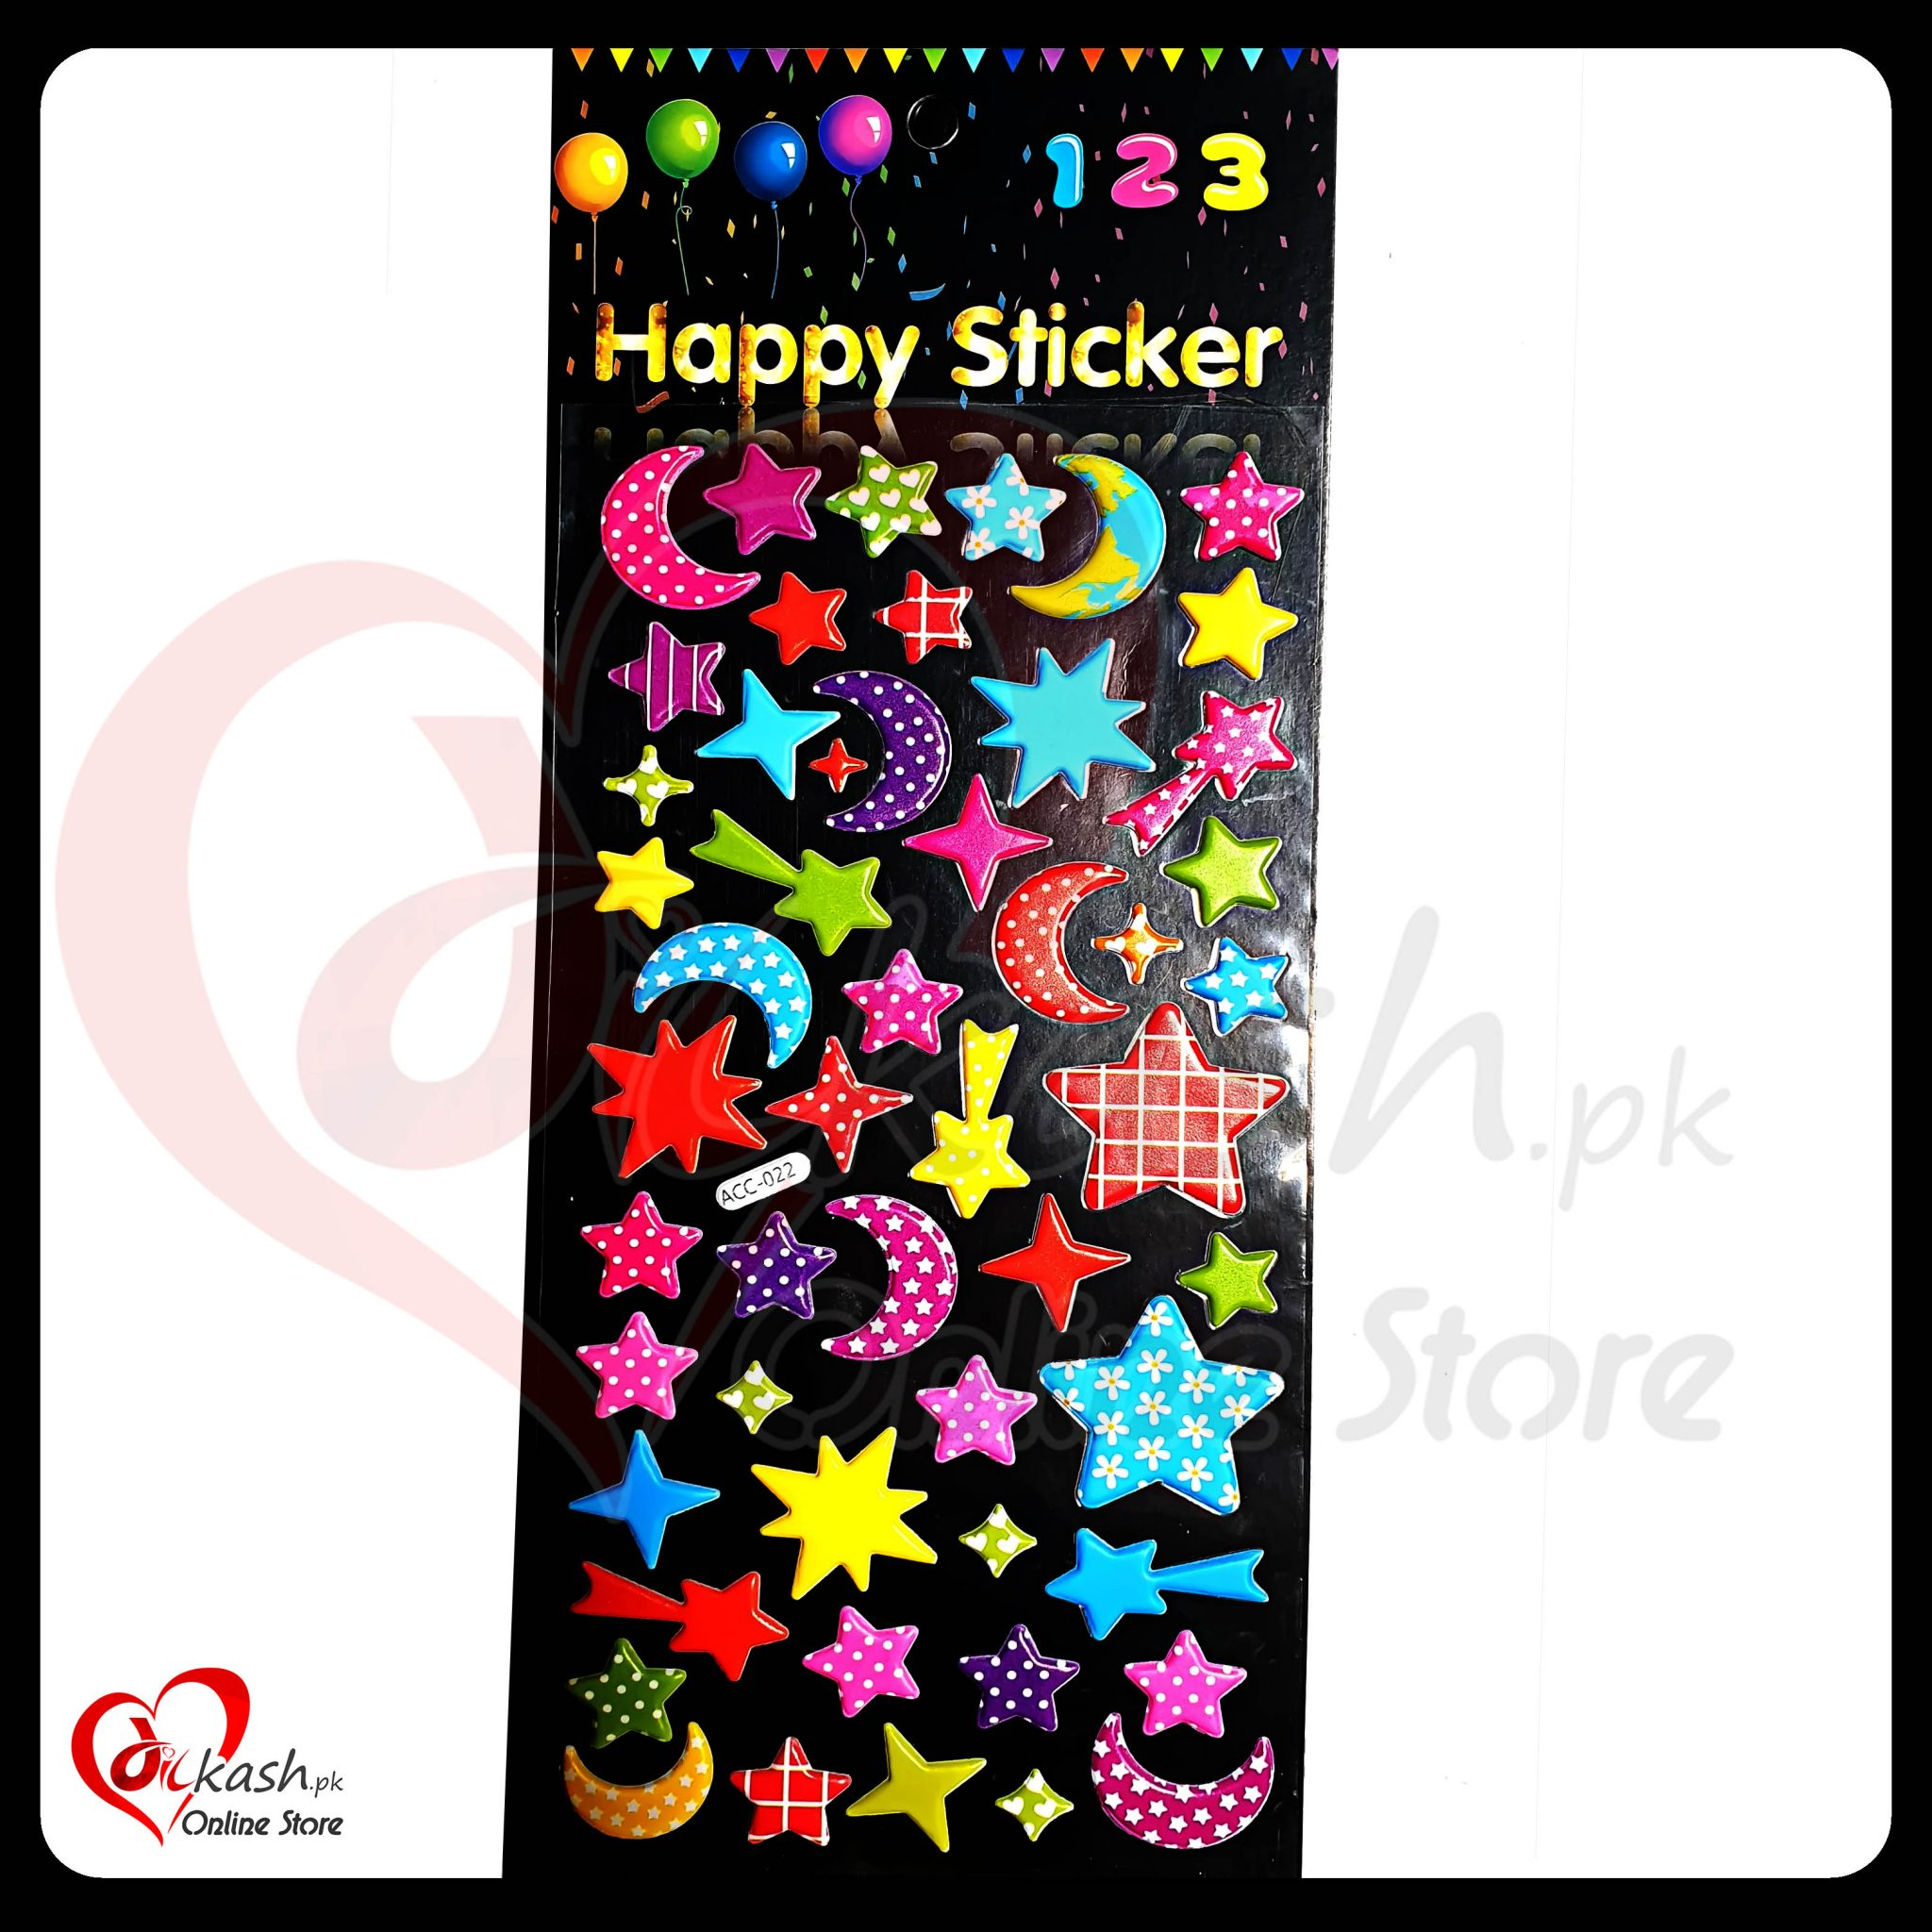 Stickers Online - Stars Happy Sticker - ACC-022